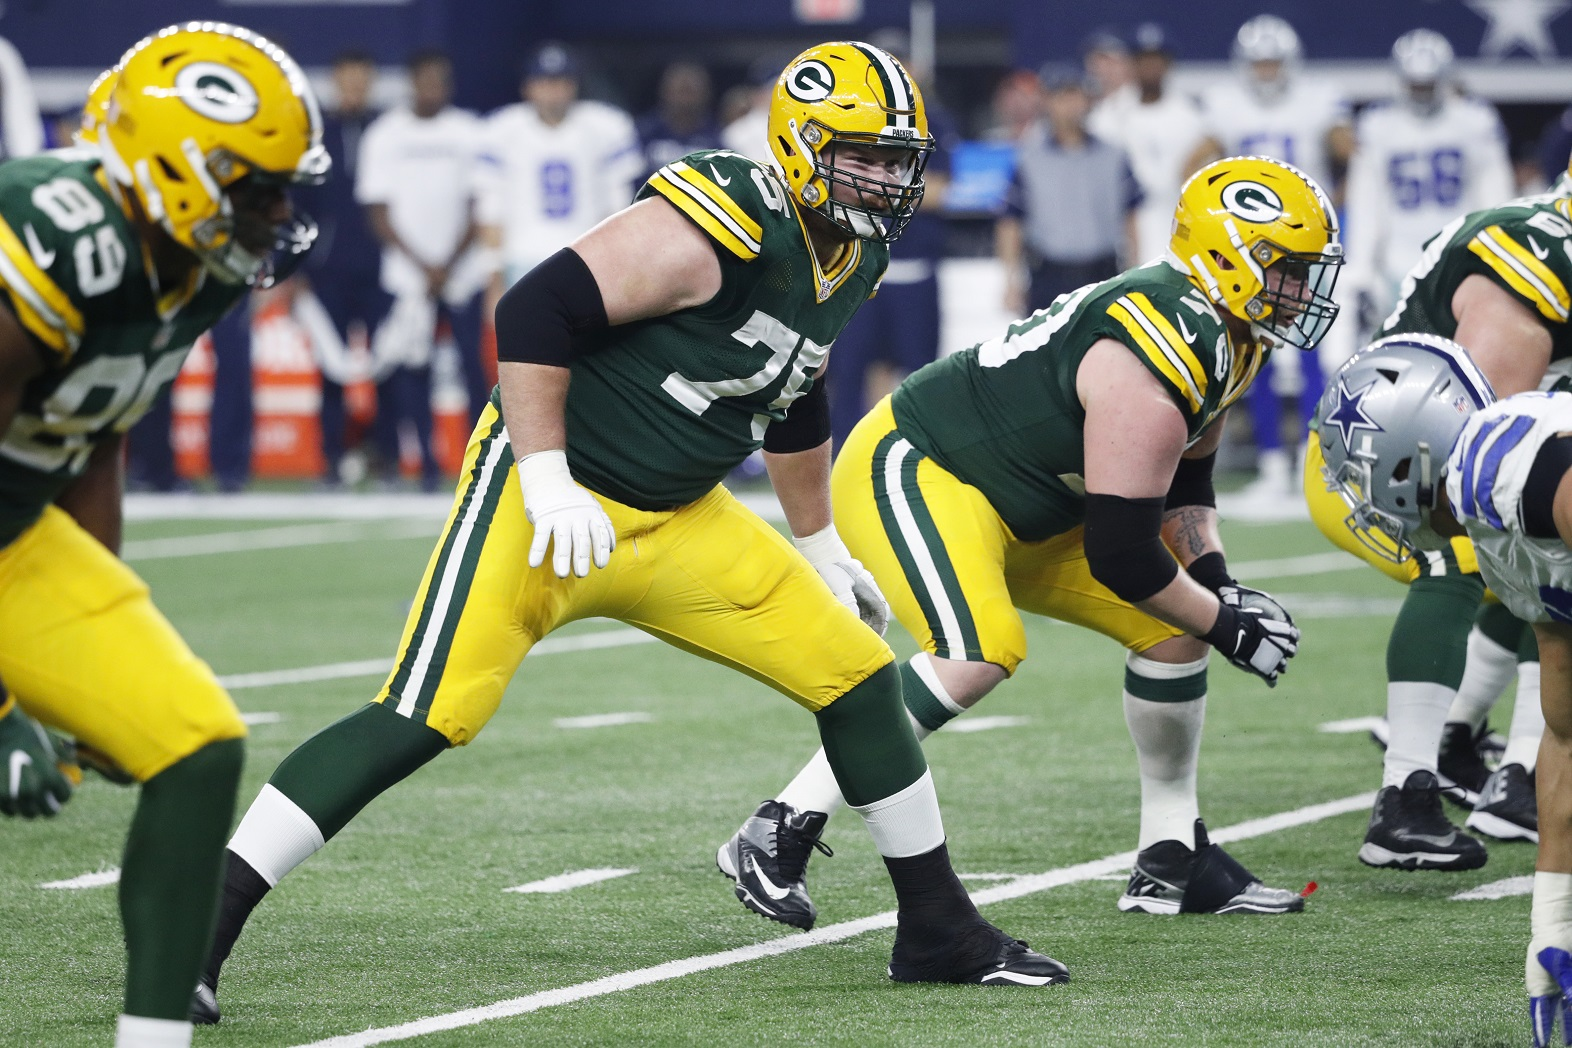 Bryan Bulaga Green Bay Packers RT NFL and PFF stats